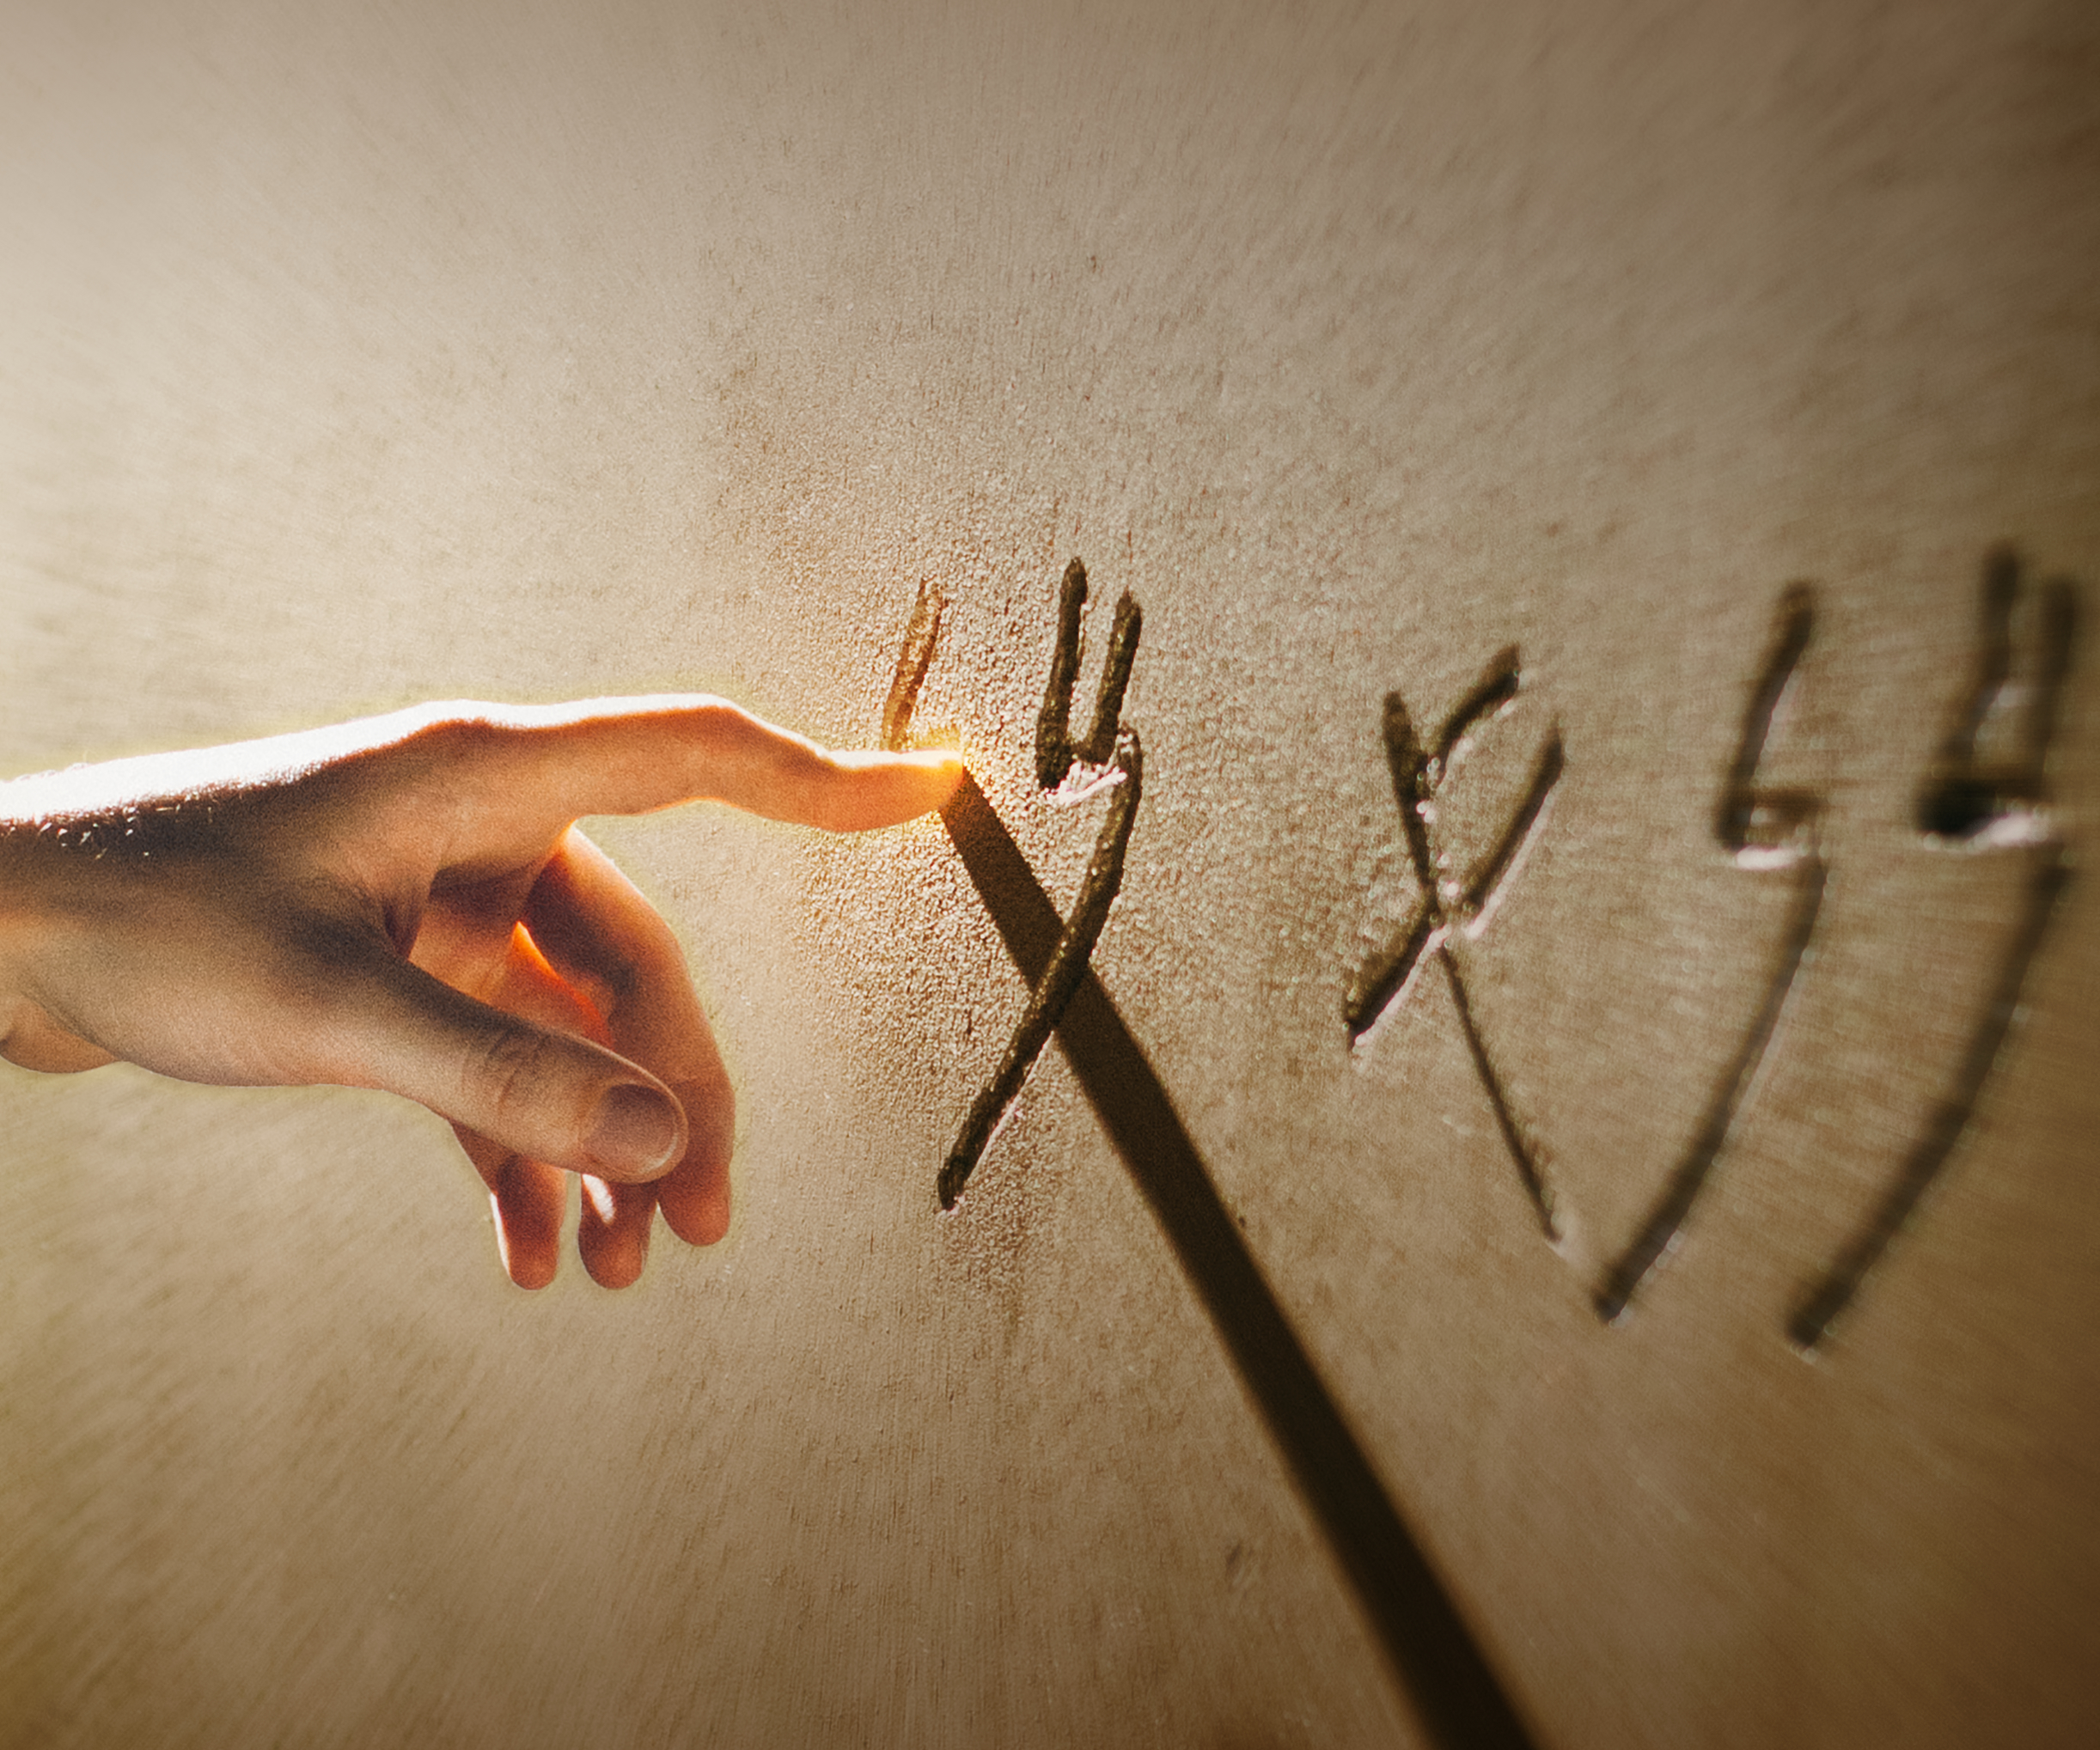 How to understand the fateful lines on the hand